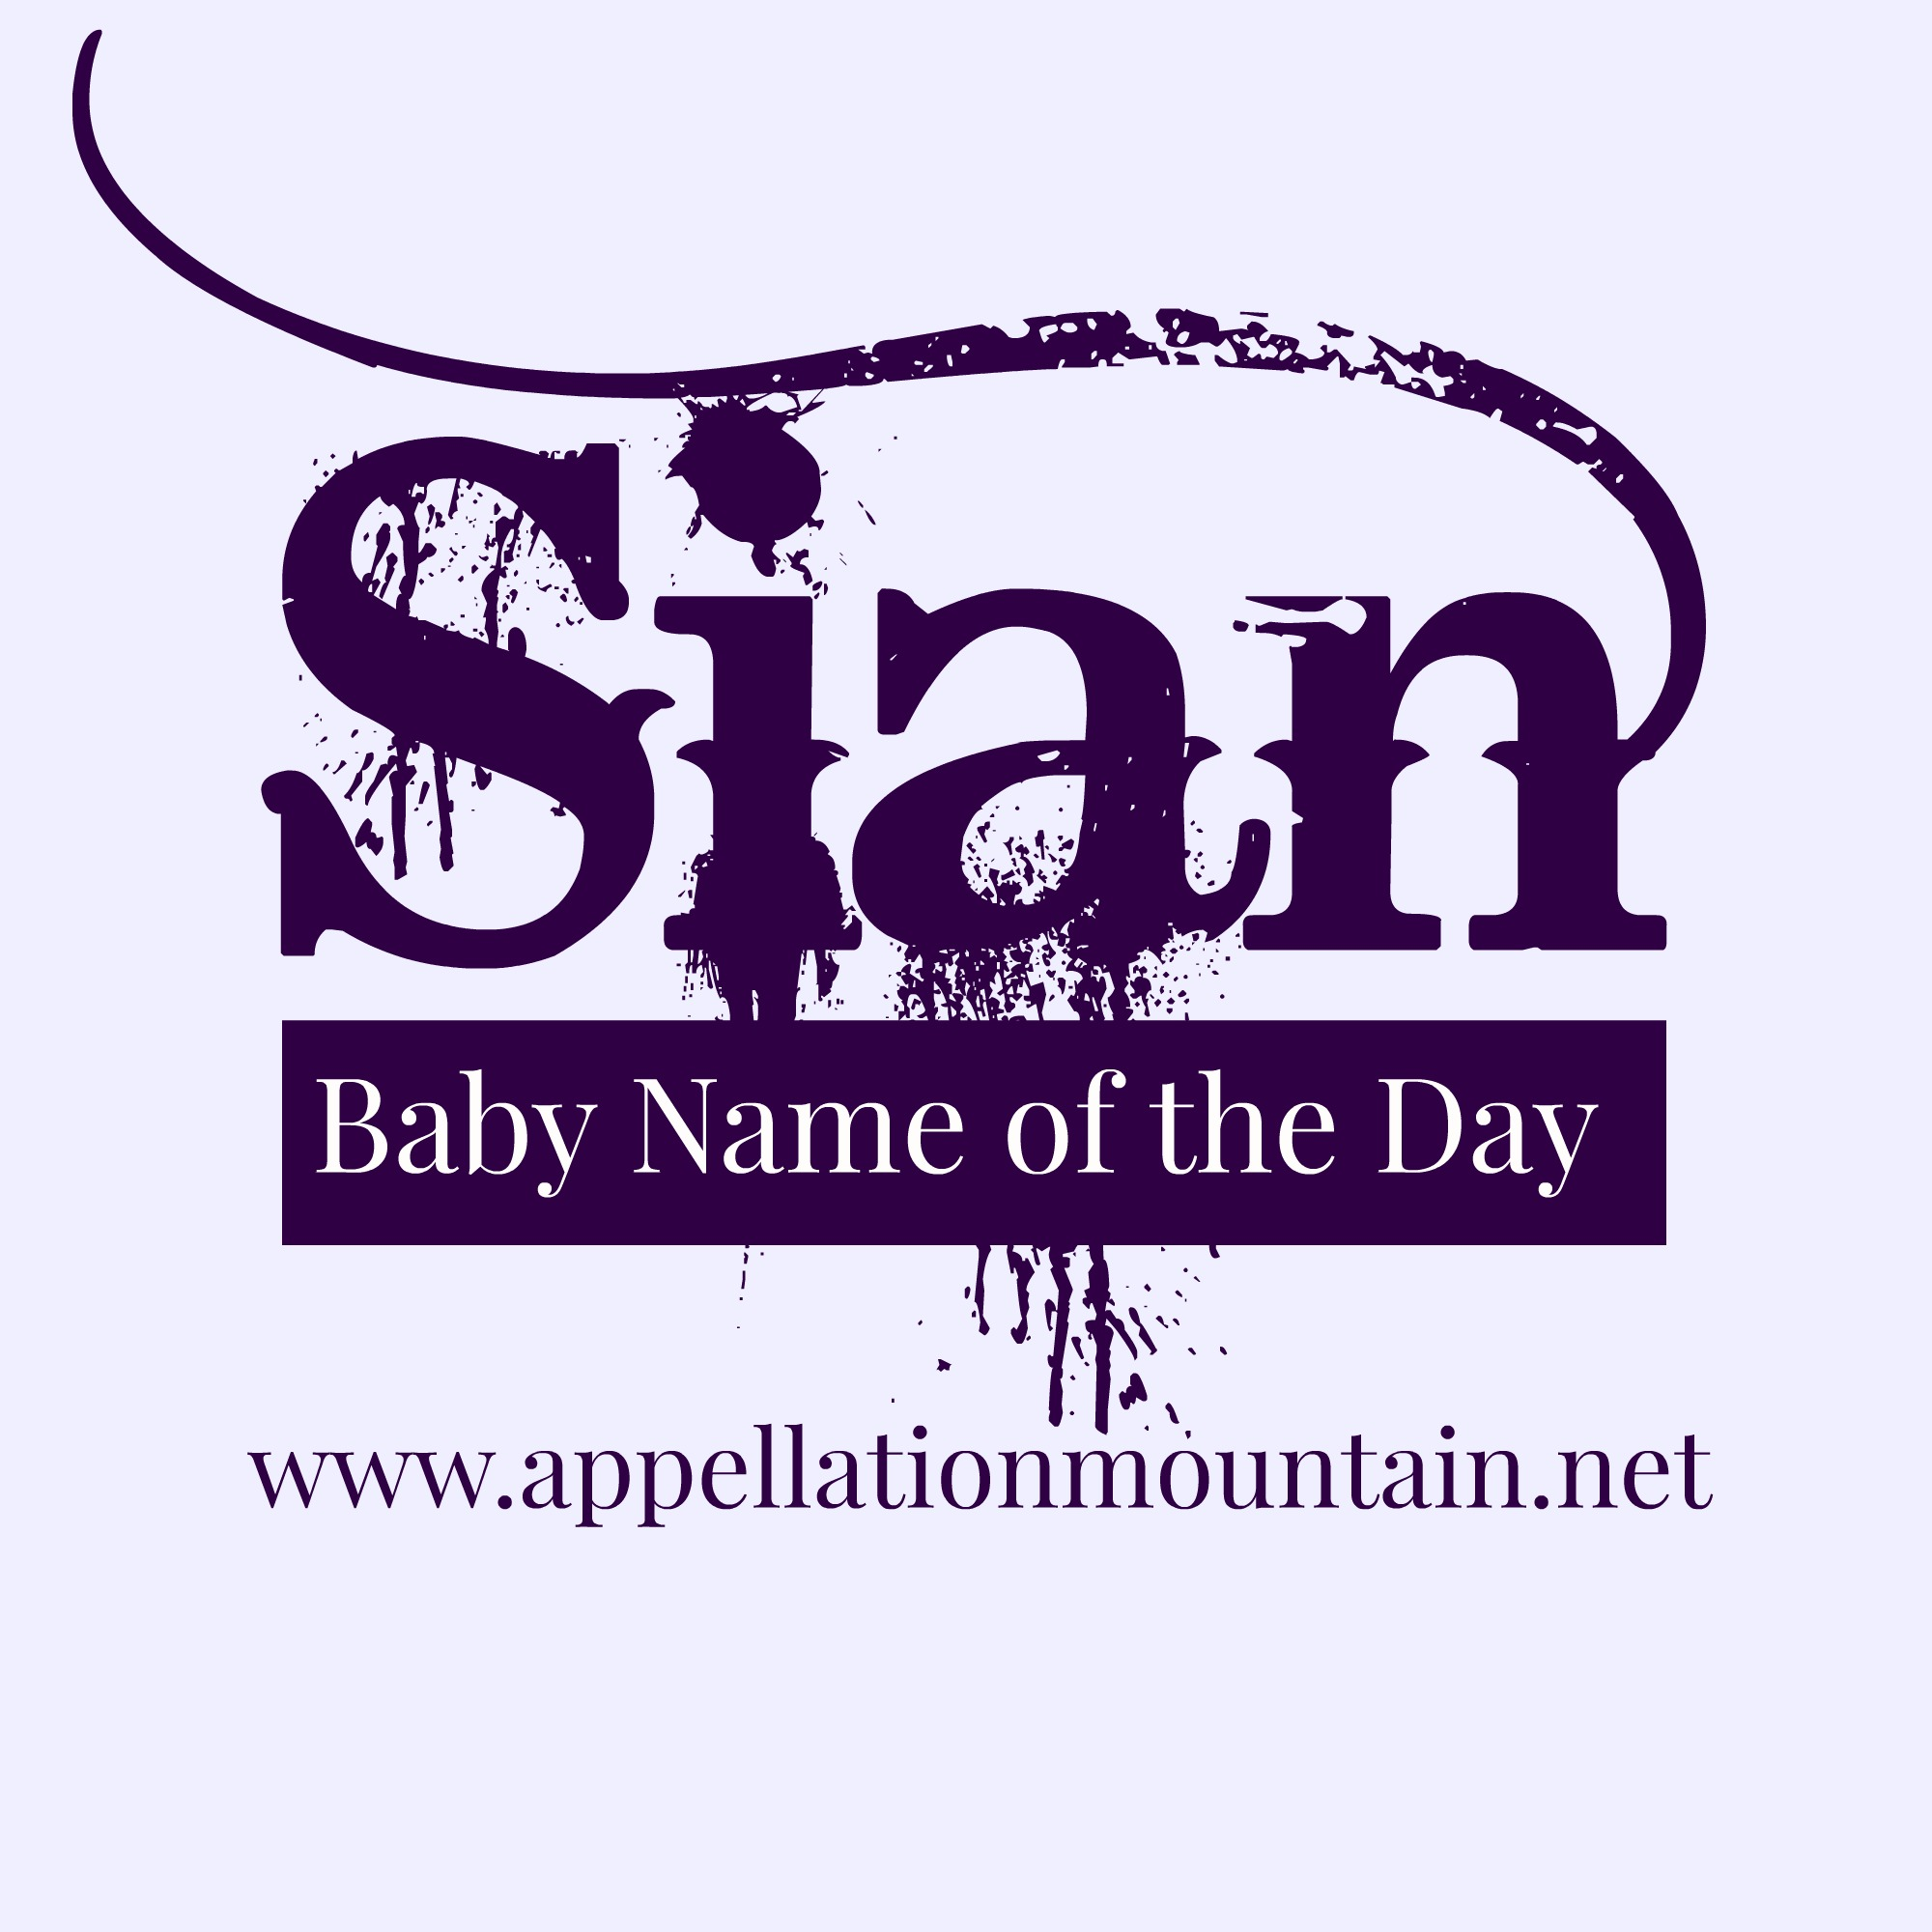 Sian: Baby Name of the Day - Appellation Mountain